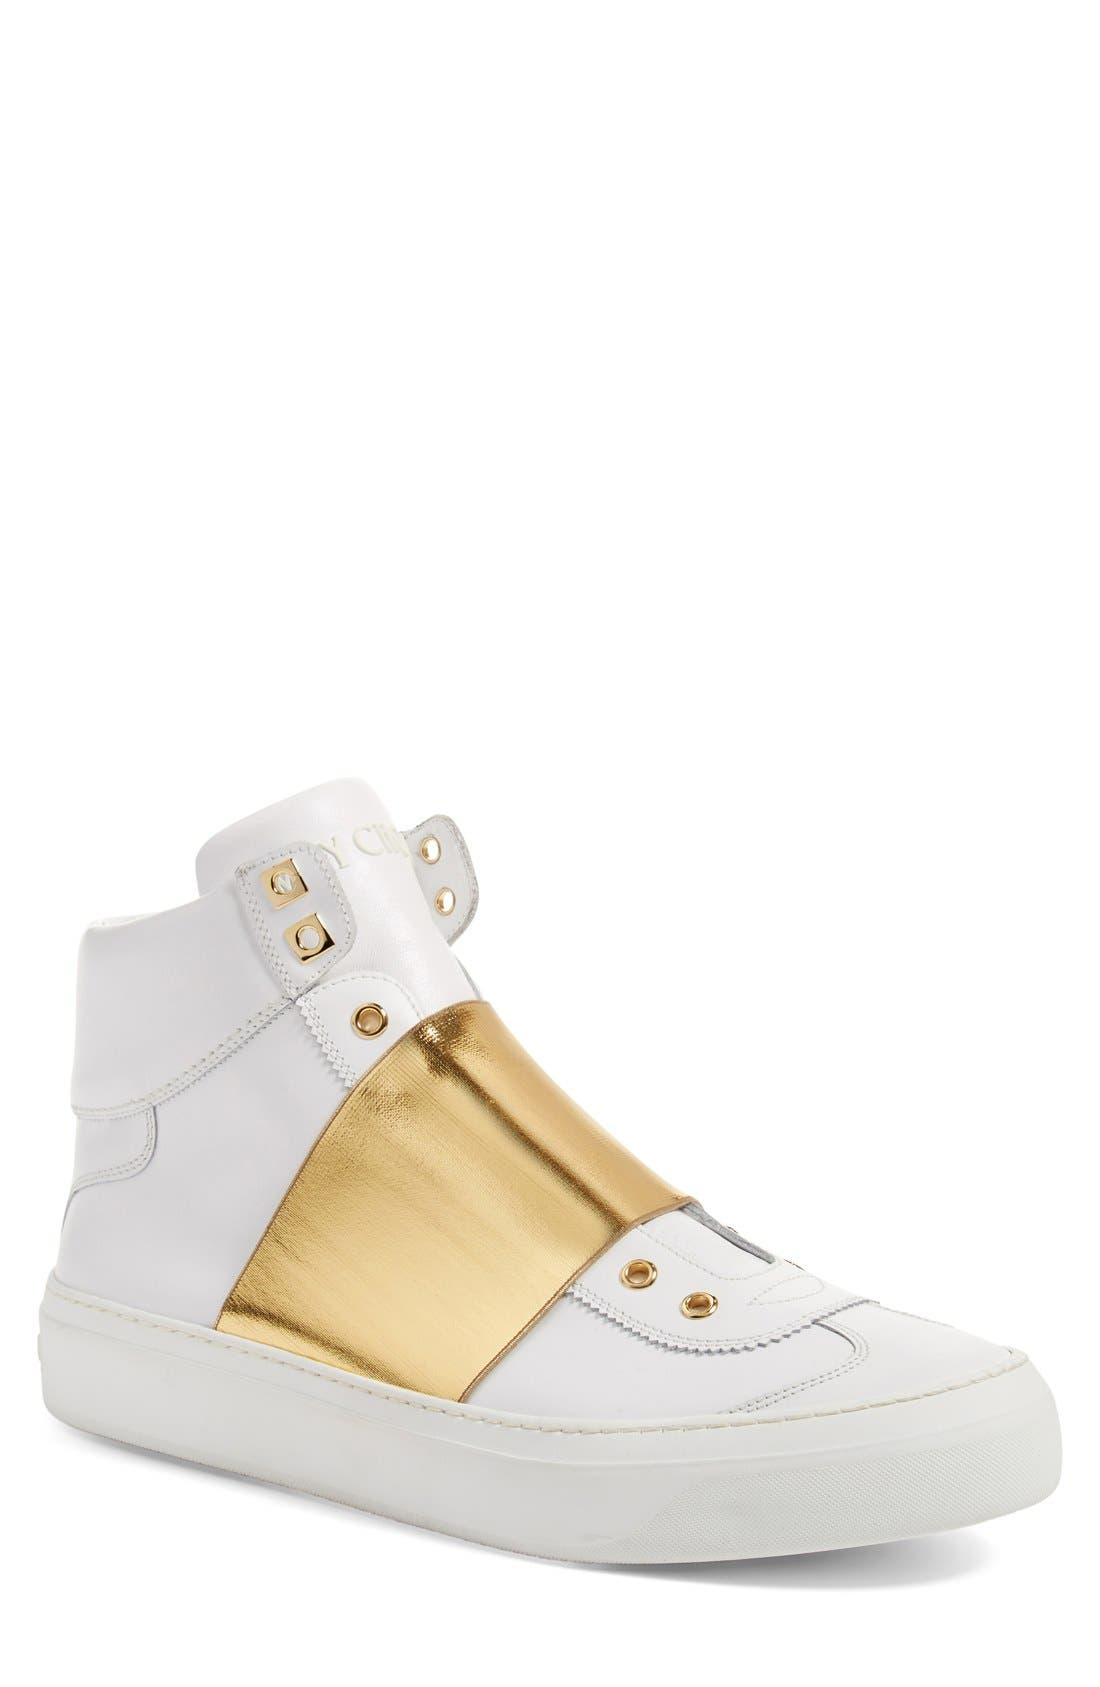 JIMMY CHOO 'Archie' High Top Sneaker